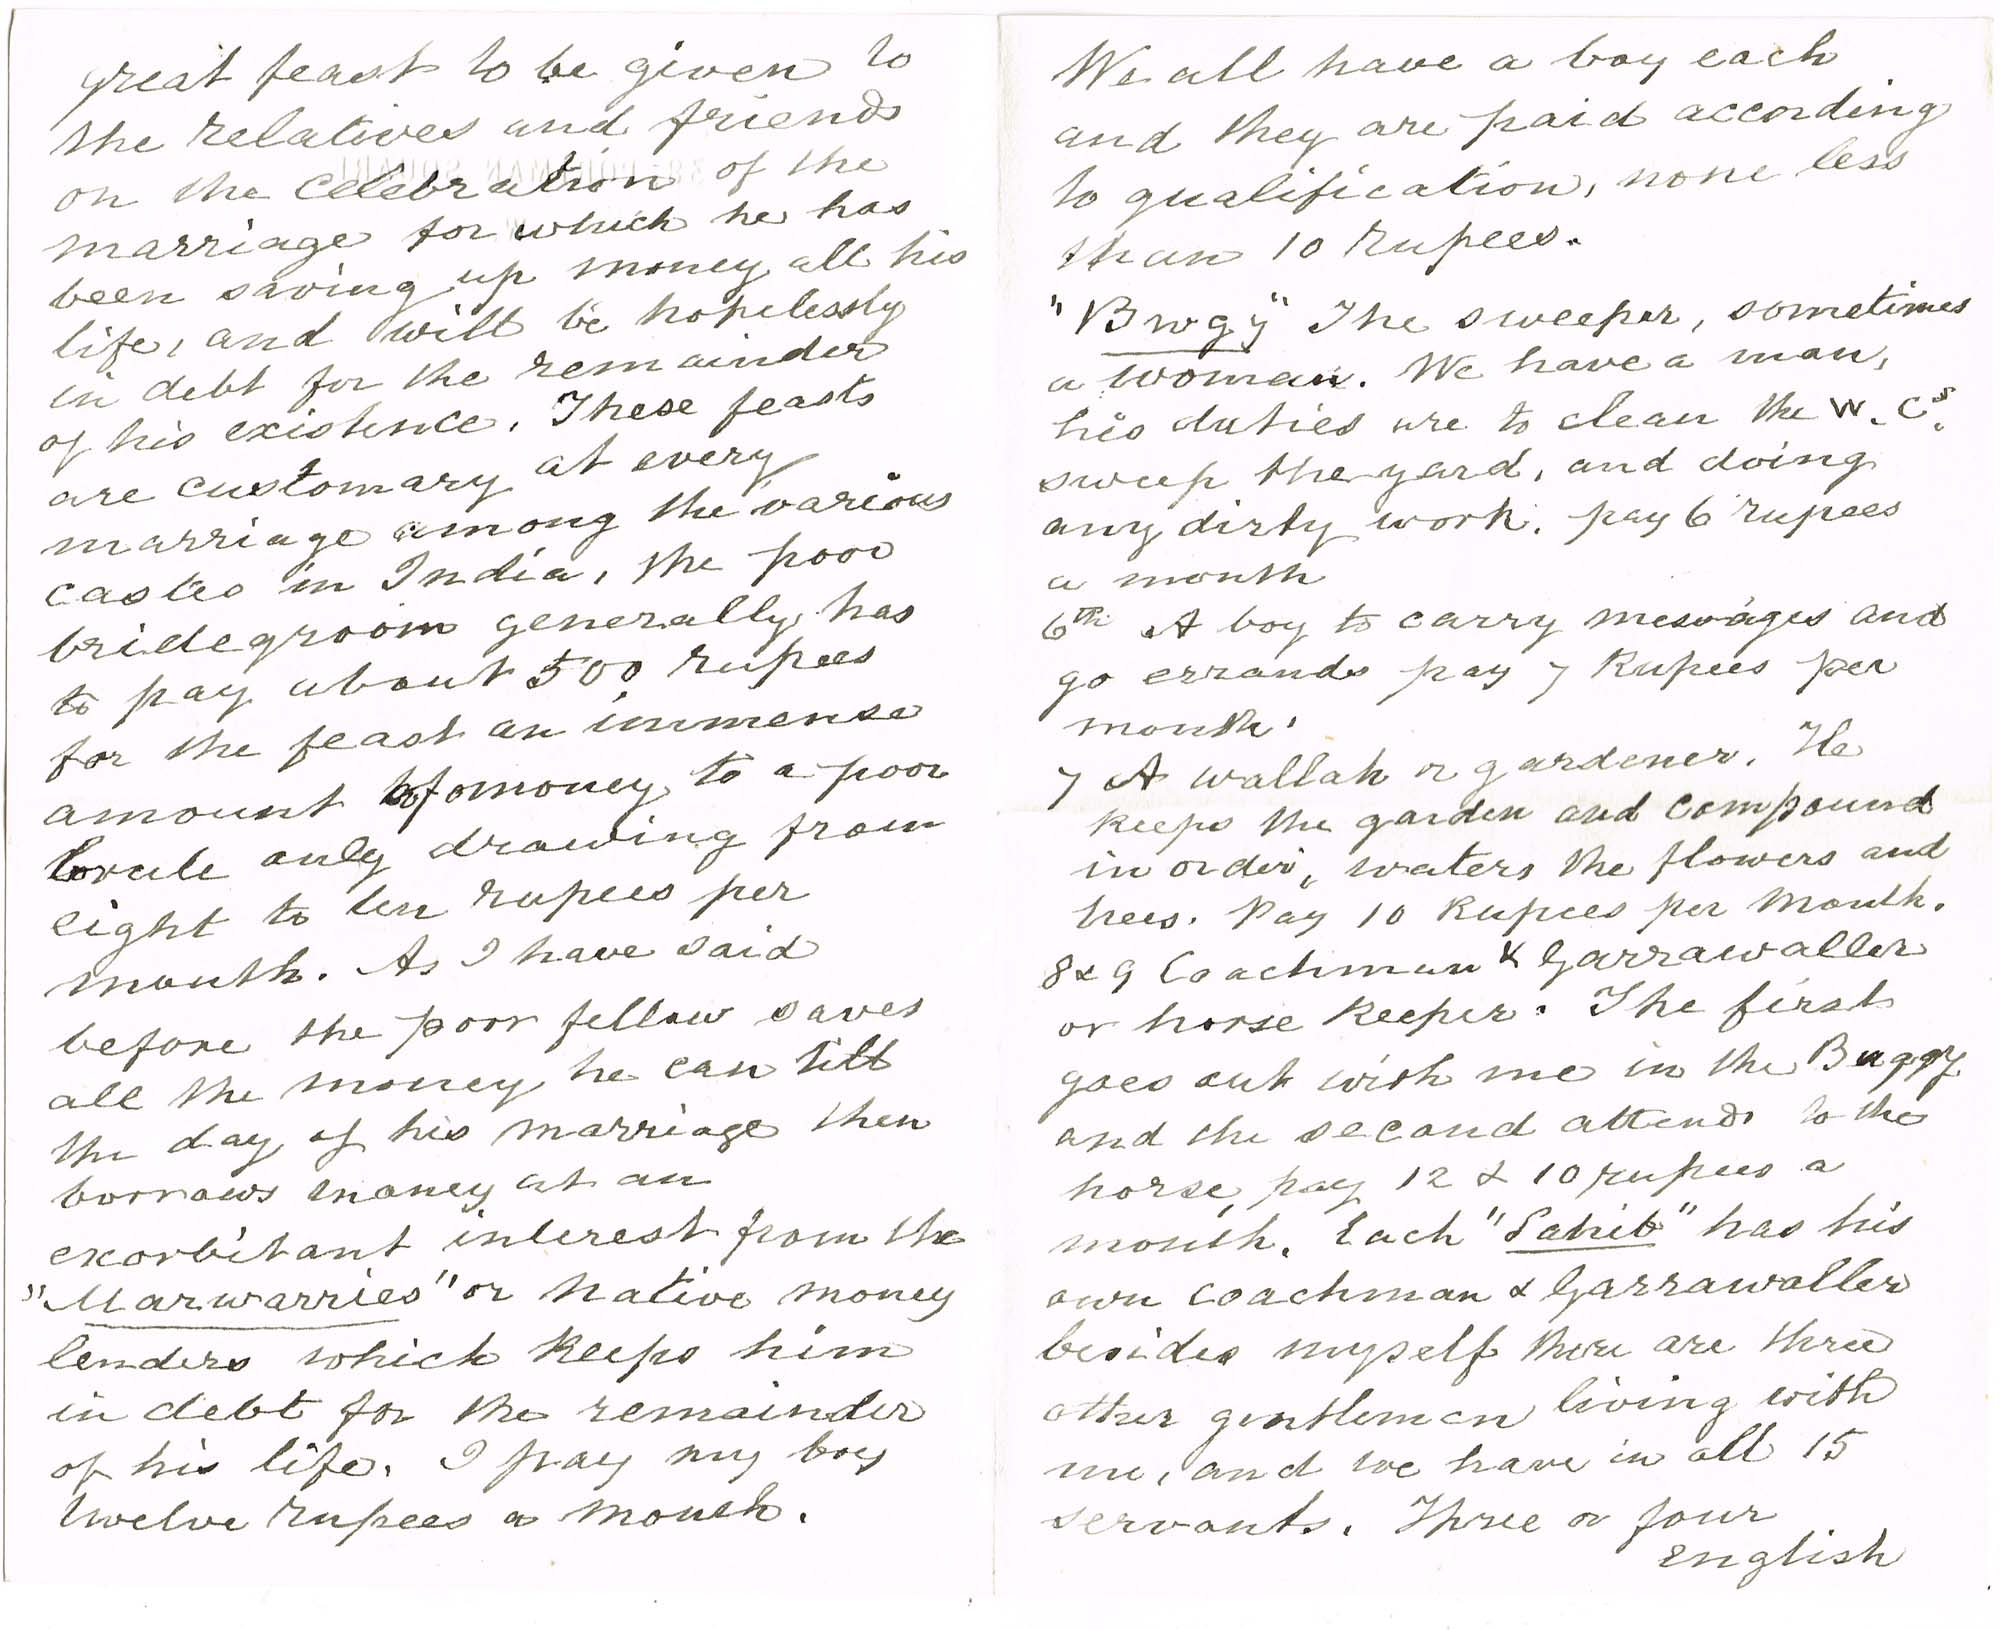 Digitised image of pages of a contemporary handwritten copy of a letter dated 13 February 1867, from Charles Cayzer in India to his sister in England.